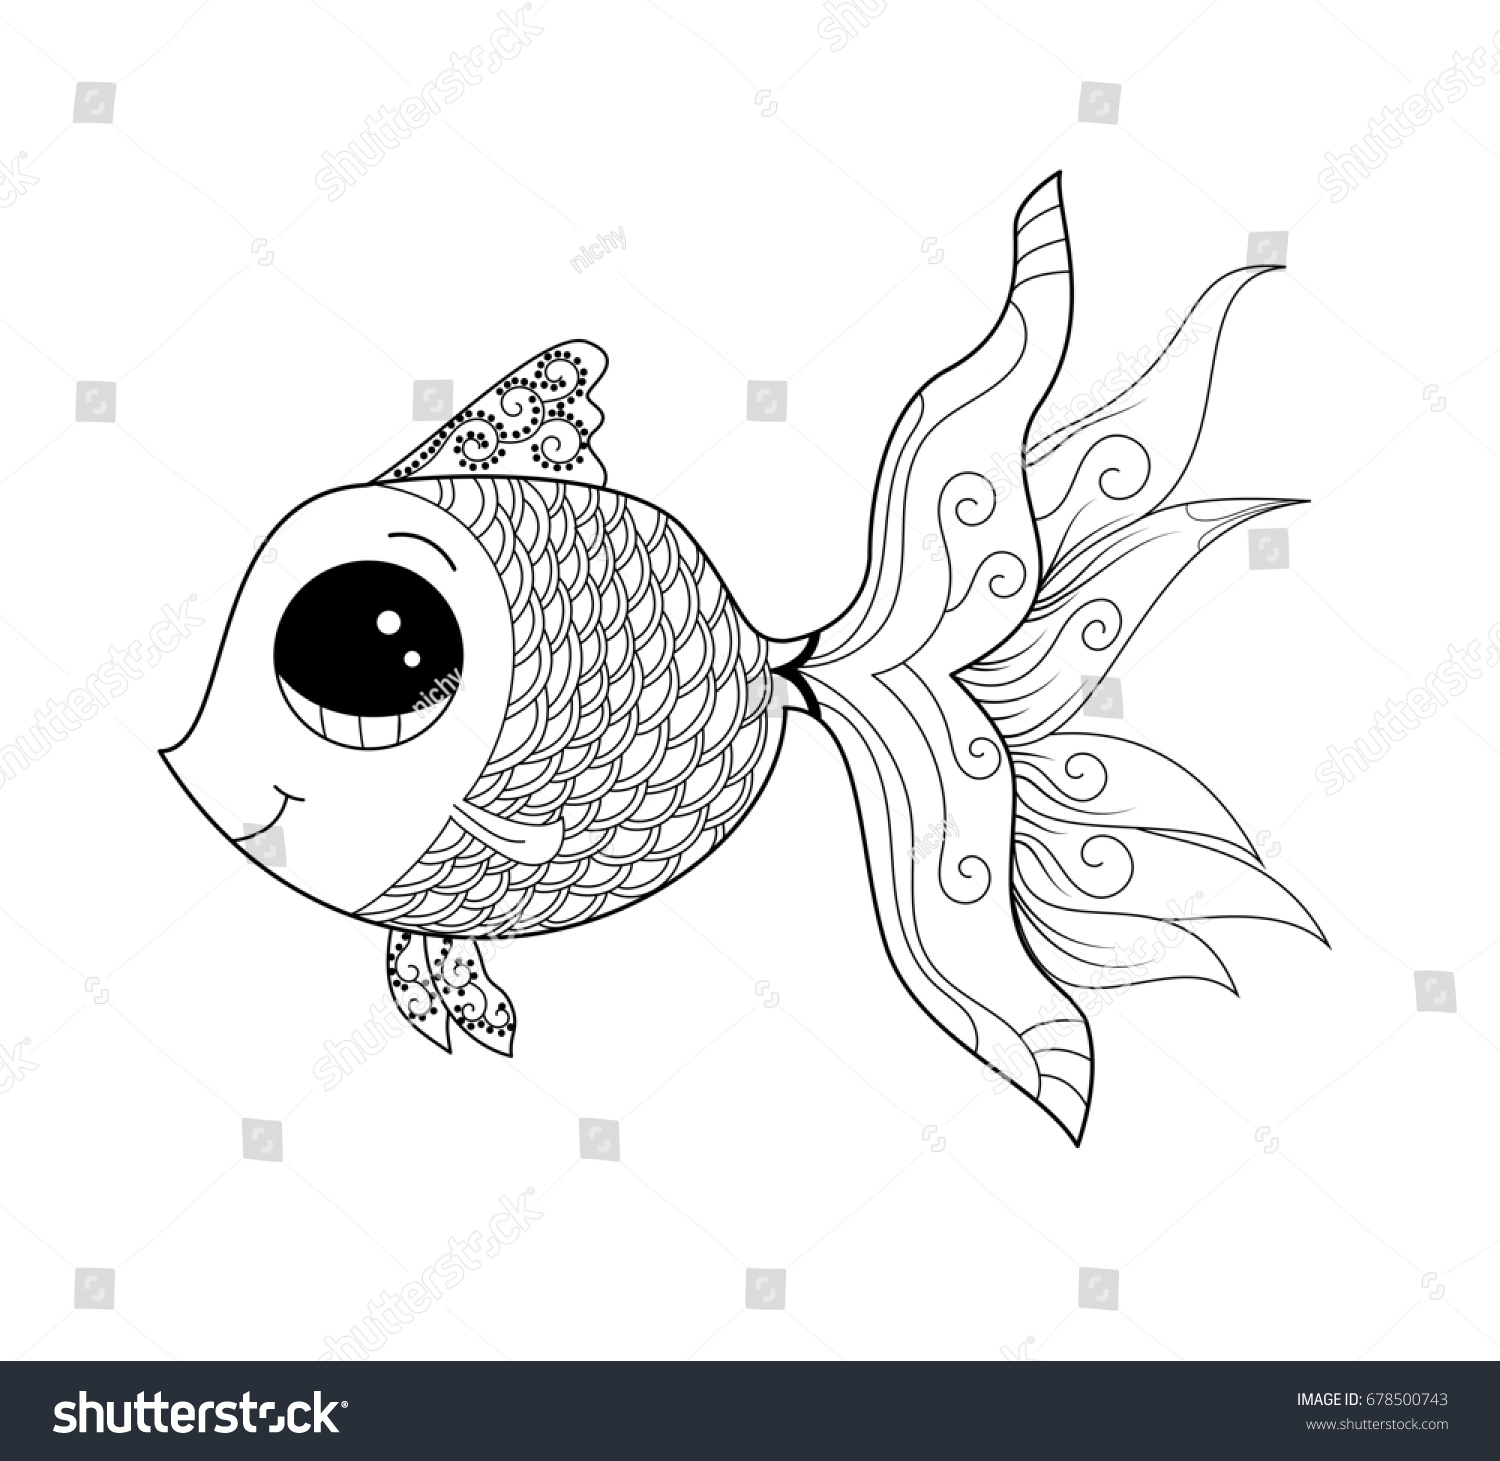 goldfish coloring adult child vector stock royalty free gold fish for and illustration coloring pages Gold Fish Coloring Page